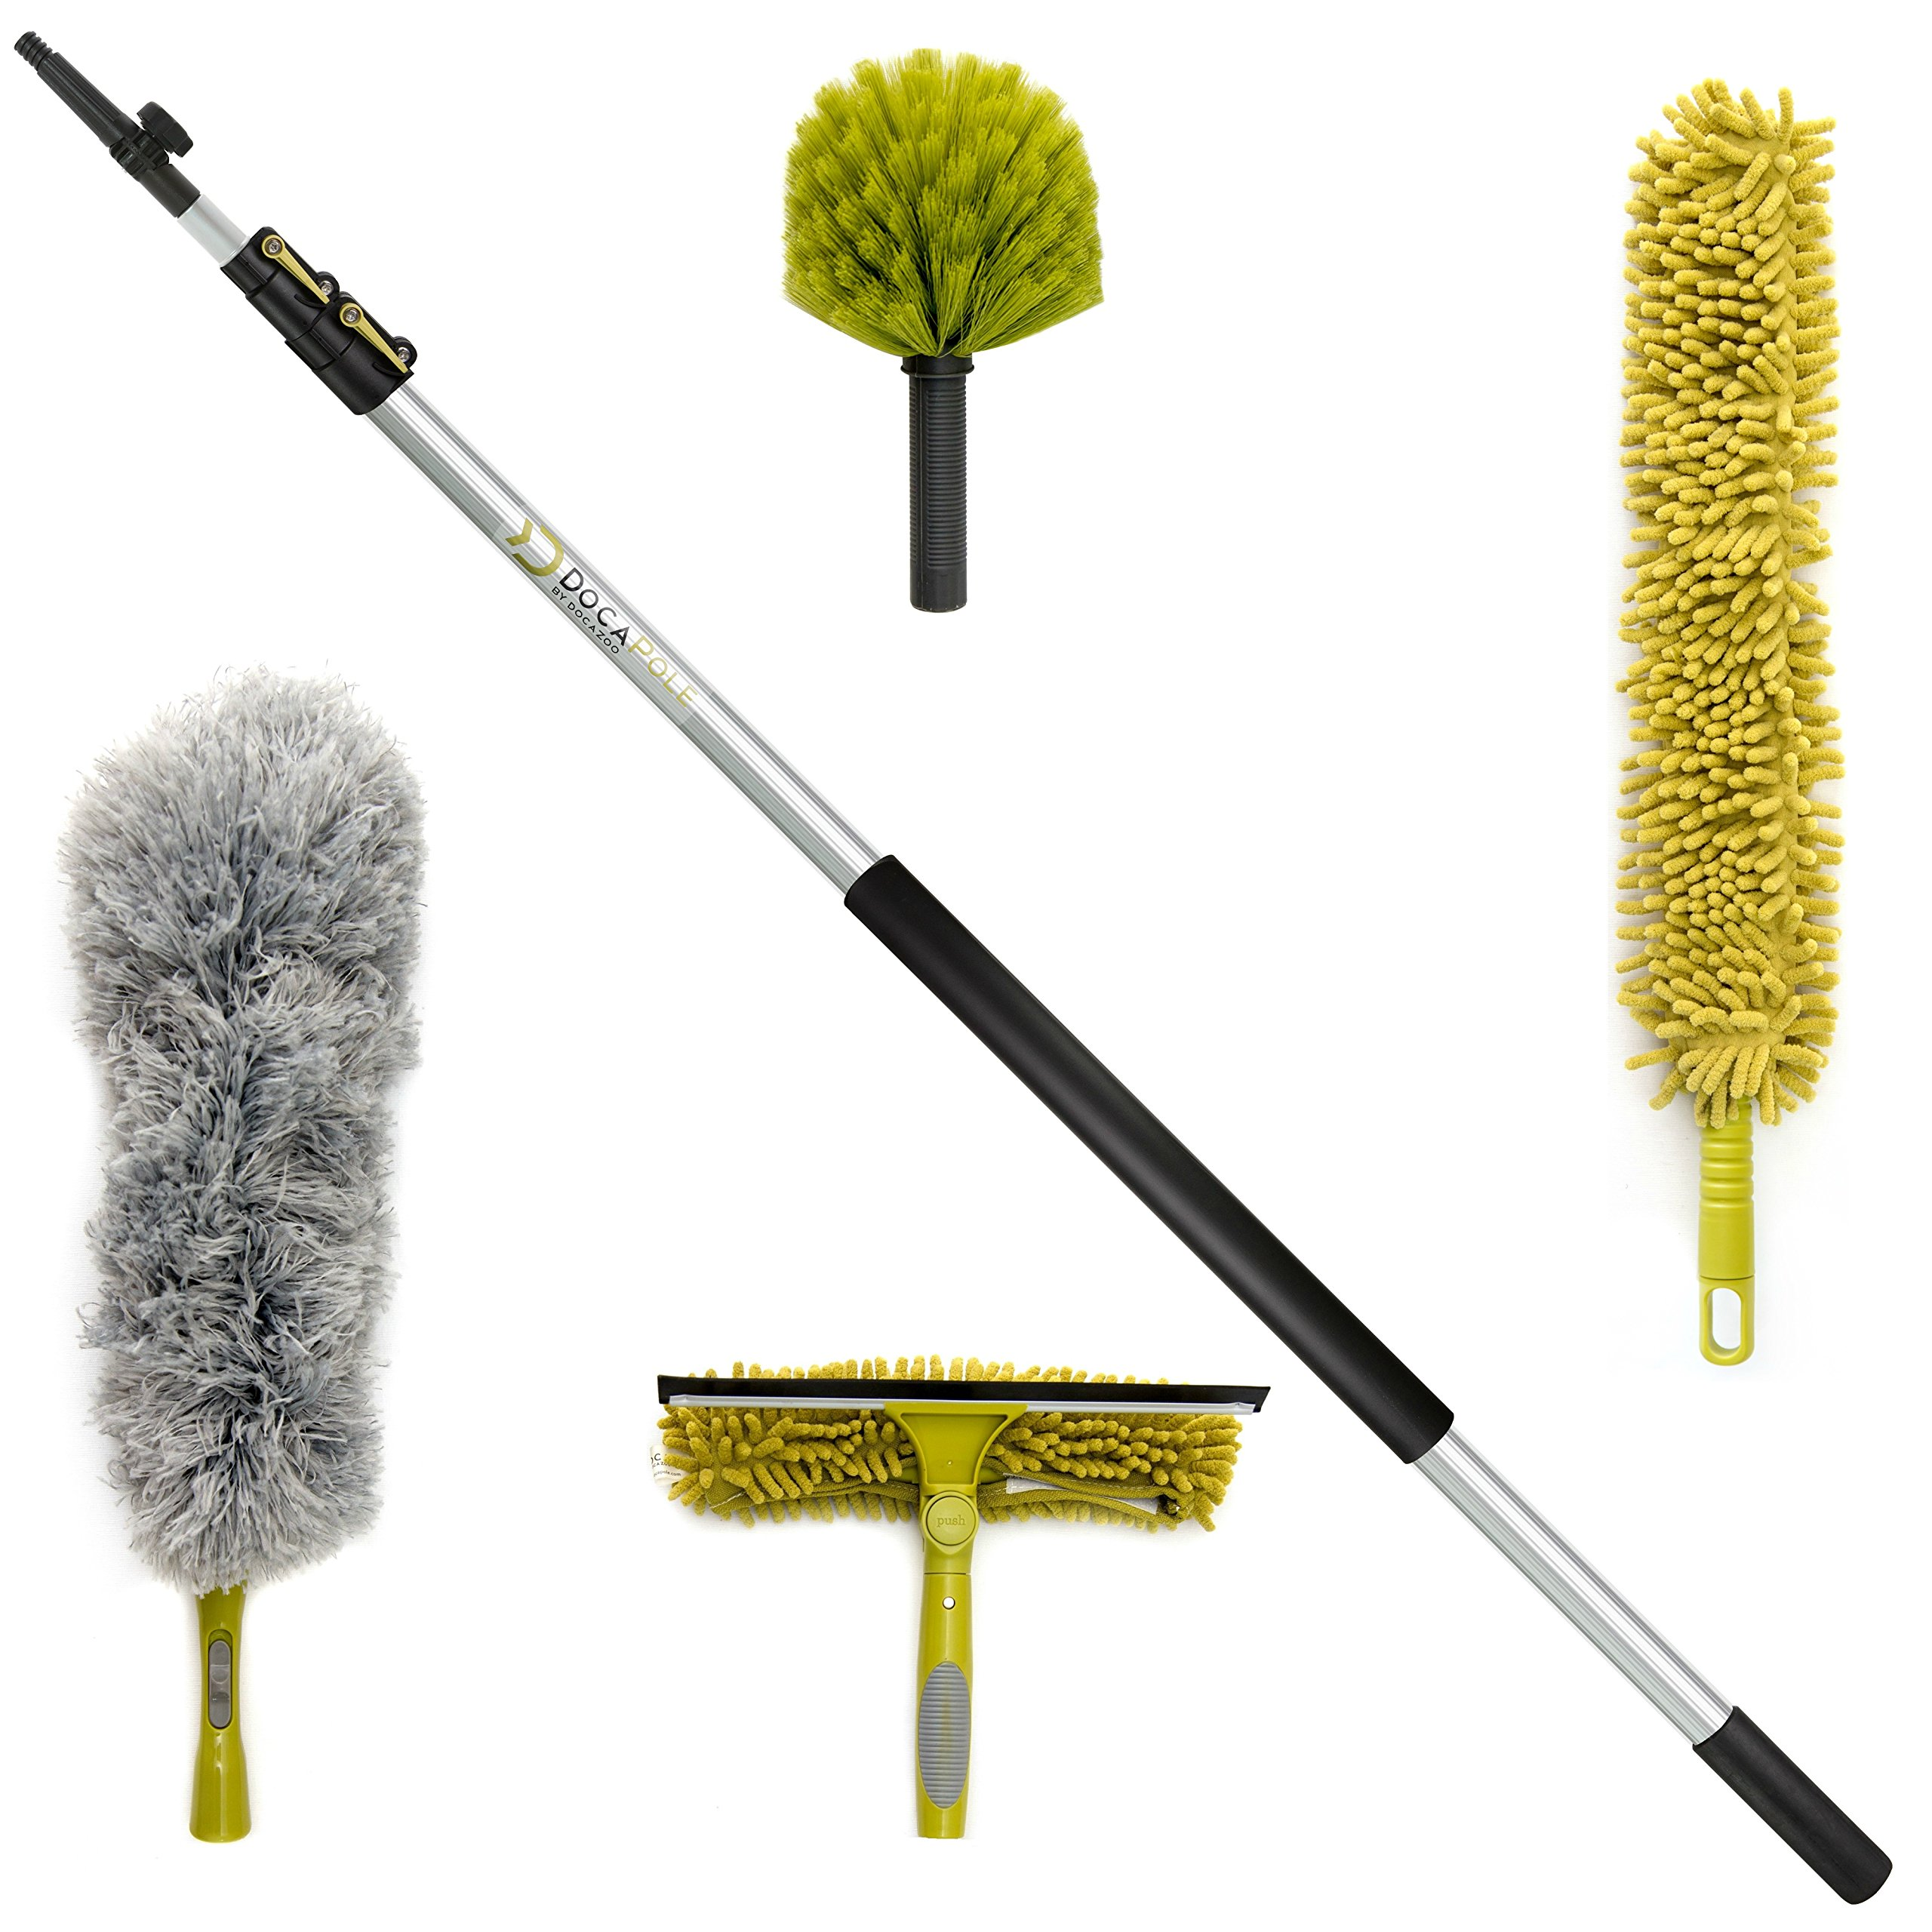 DocaPole Cleaning Kit with 12 Foot Extension Pole // Includes 3 Dusting Attachments + 1 Window Squeegee & Washer // Cobweb Duster // Microfiber Feather Duster // Ceiling Fan Duster & Cleaner